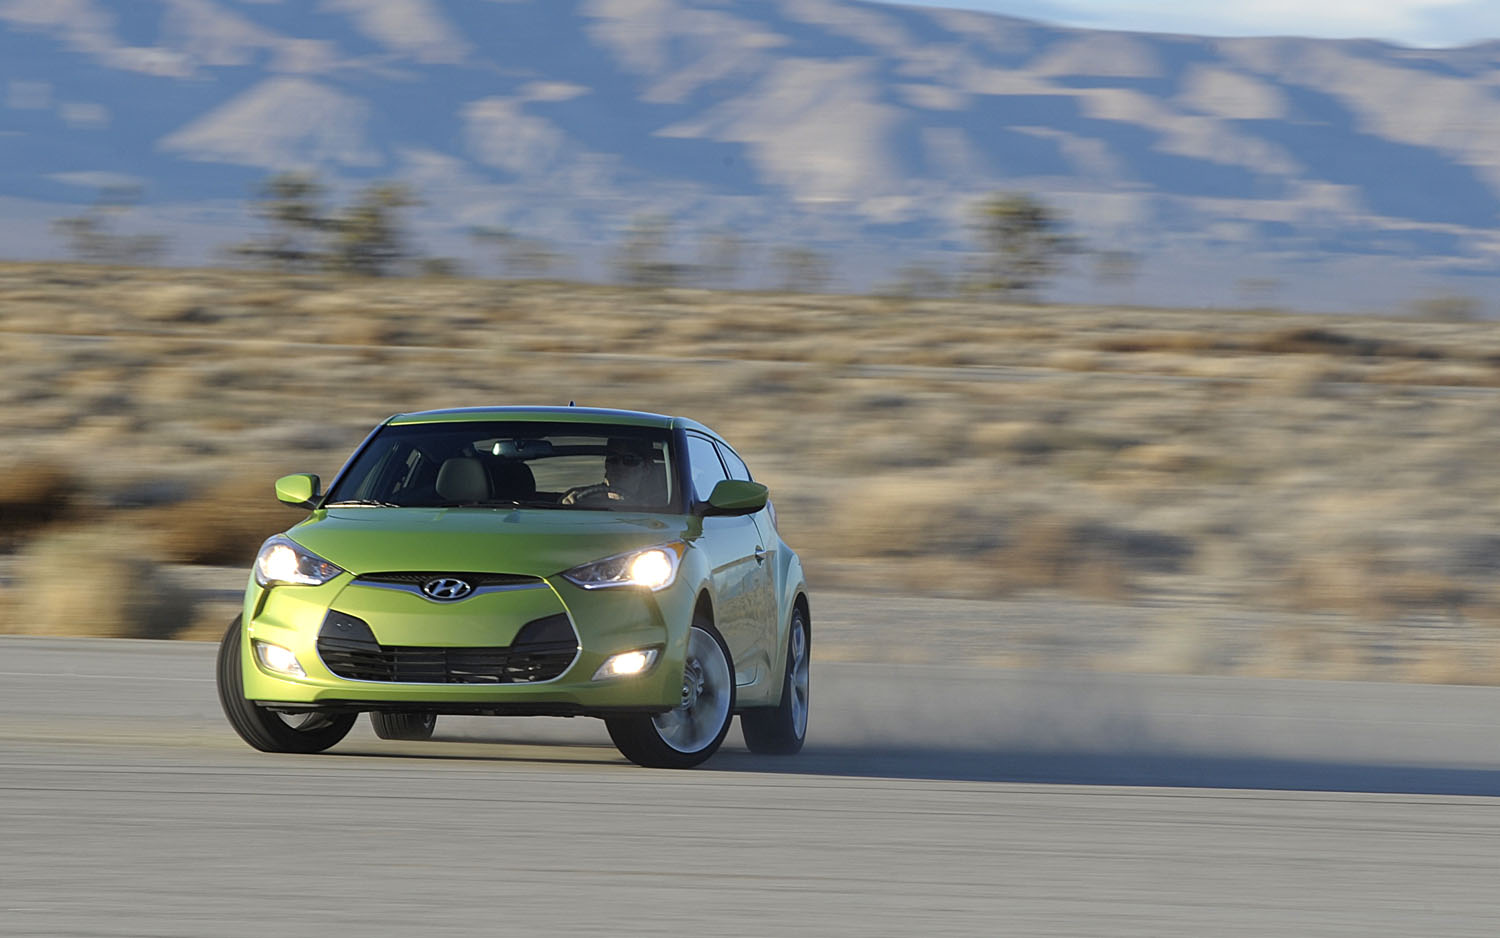 Build Your Own 2012 Hyundai Veloster, Fully-Loaded at $23,685